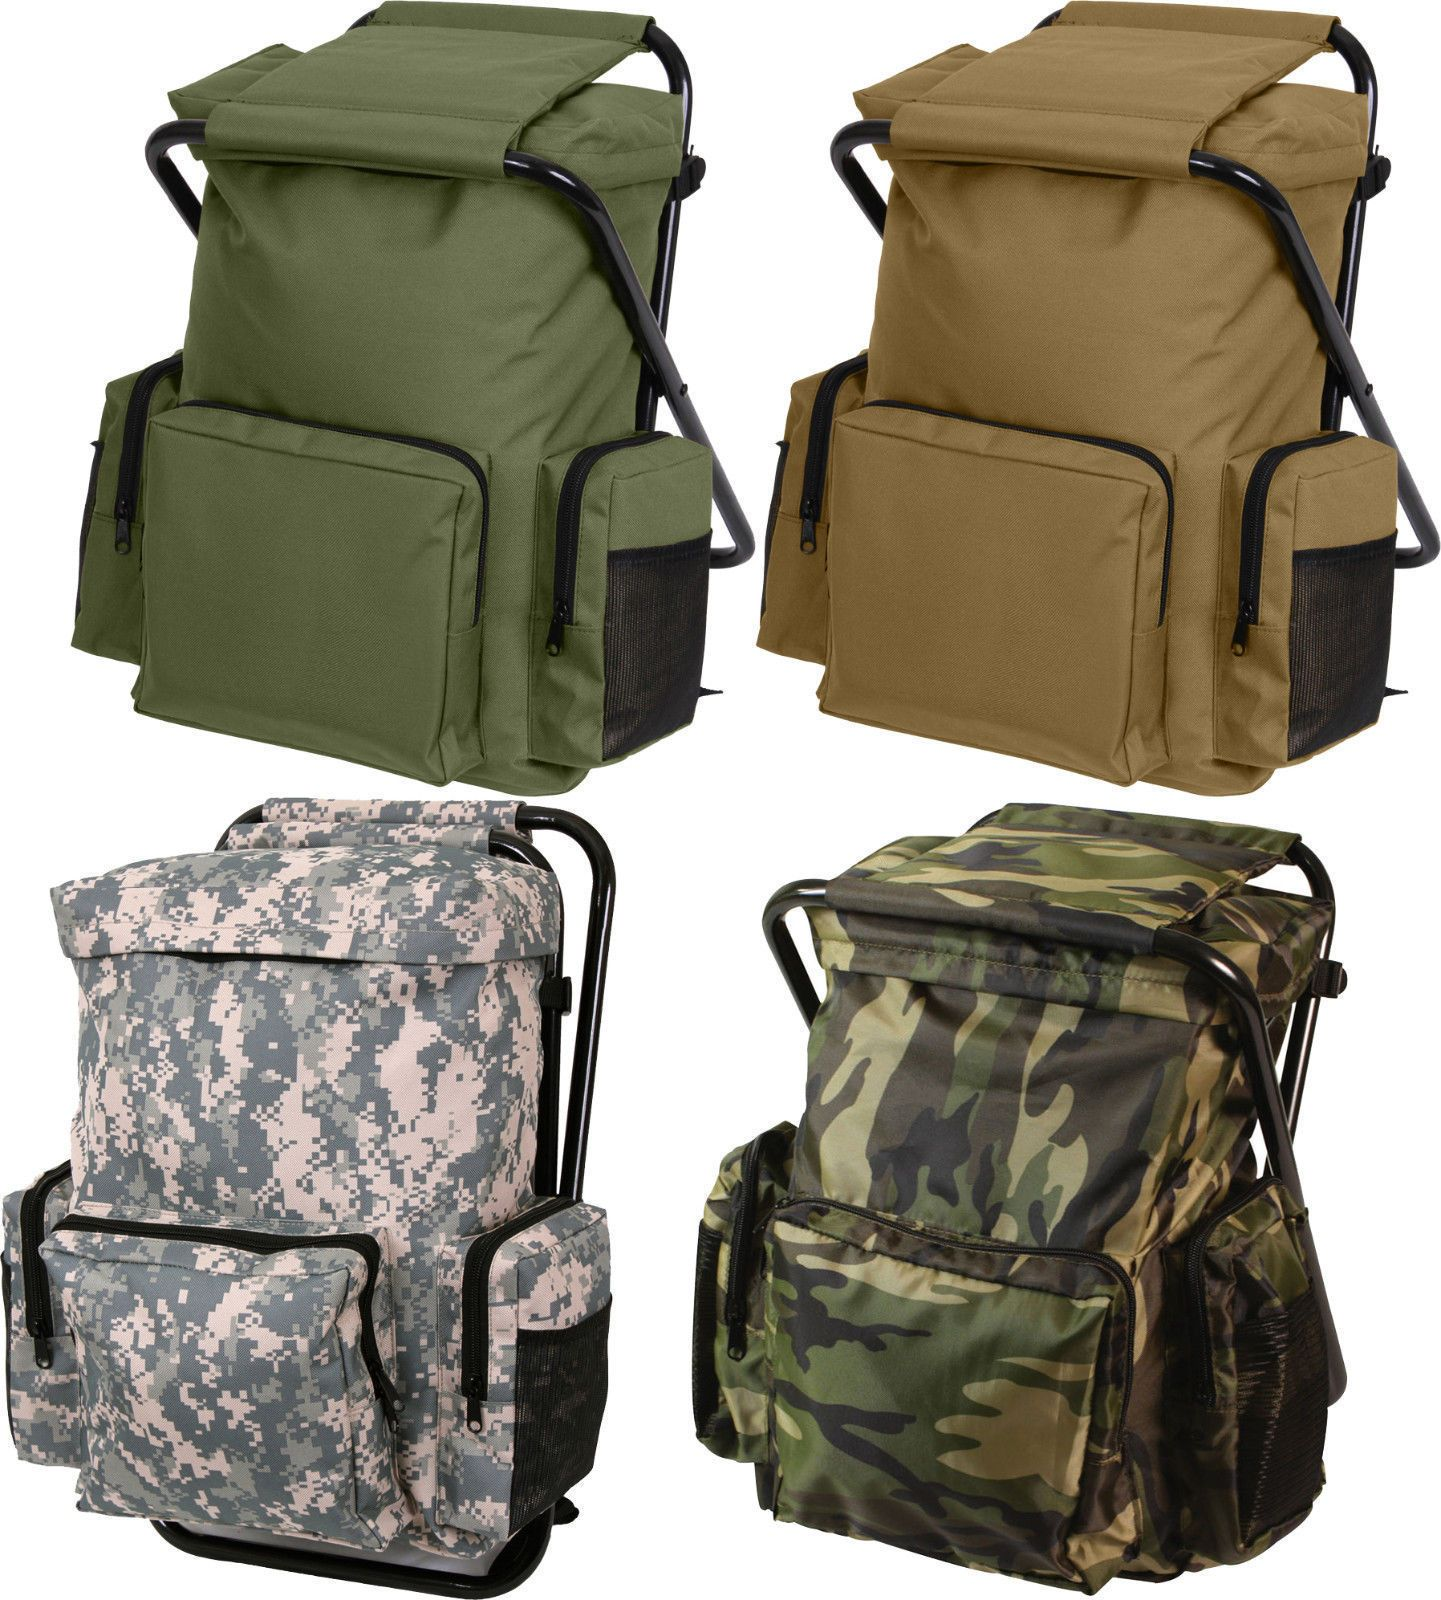 Backpack And Stool Combo Pack Hiking Camping Backpack